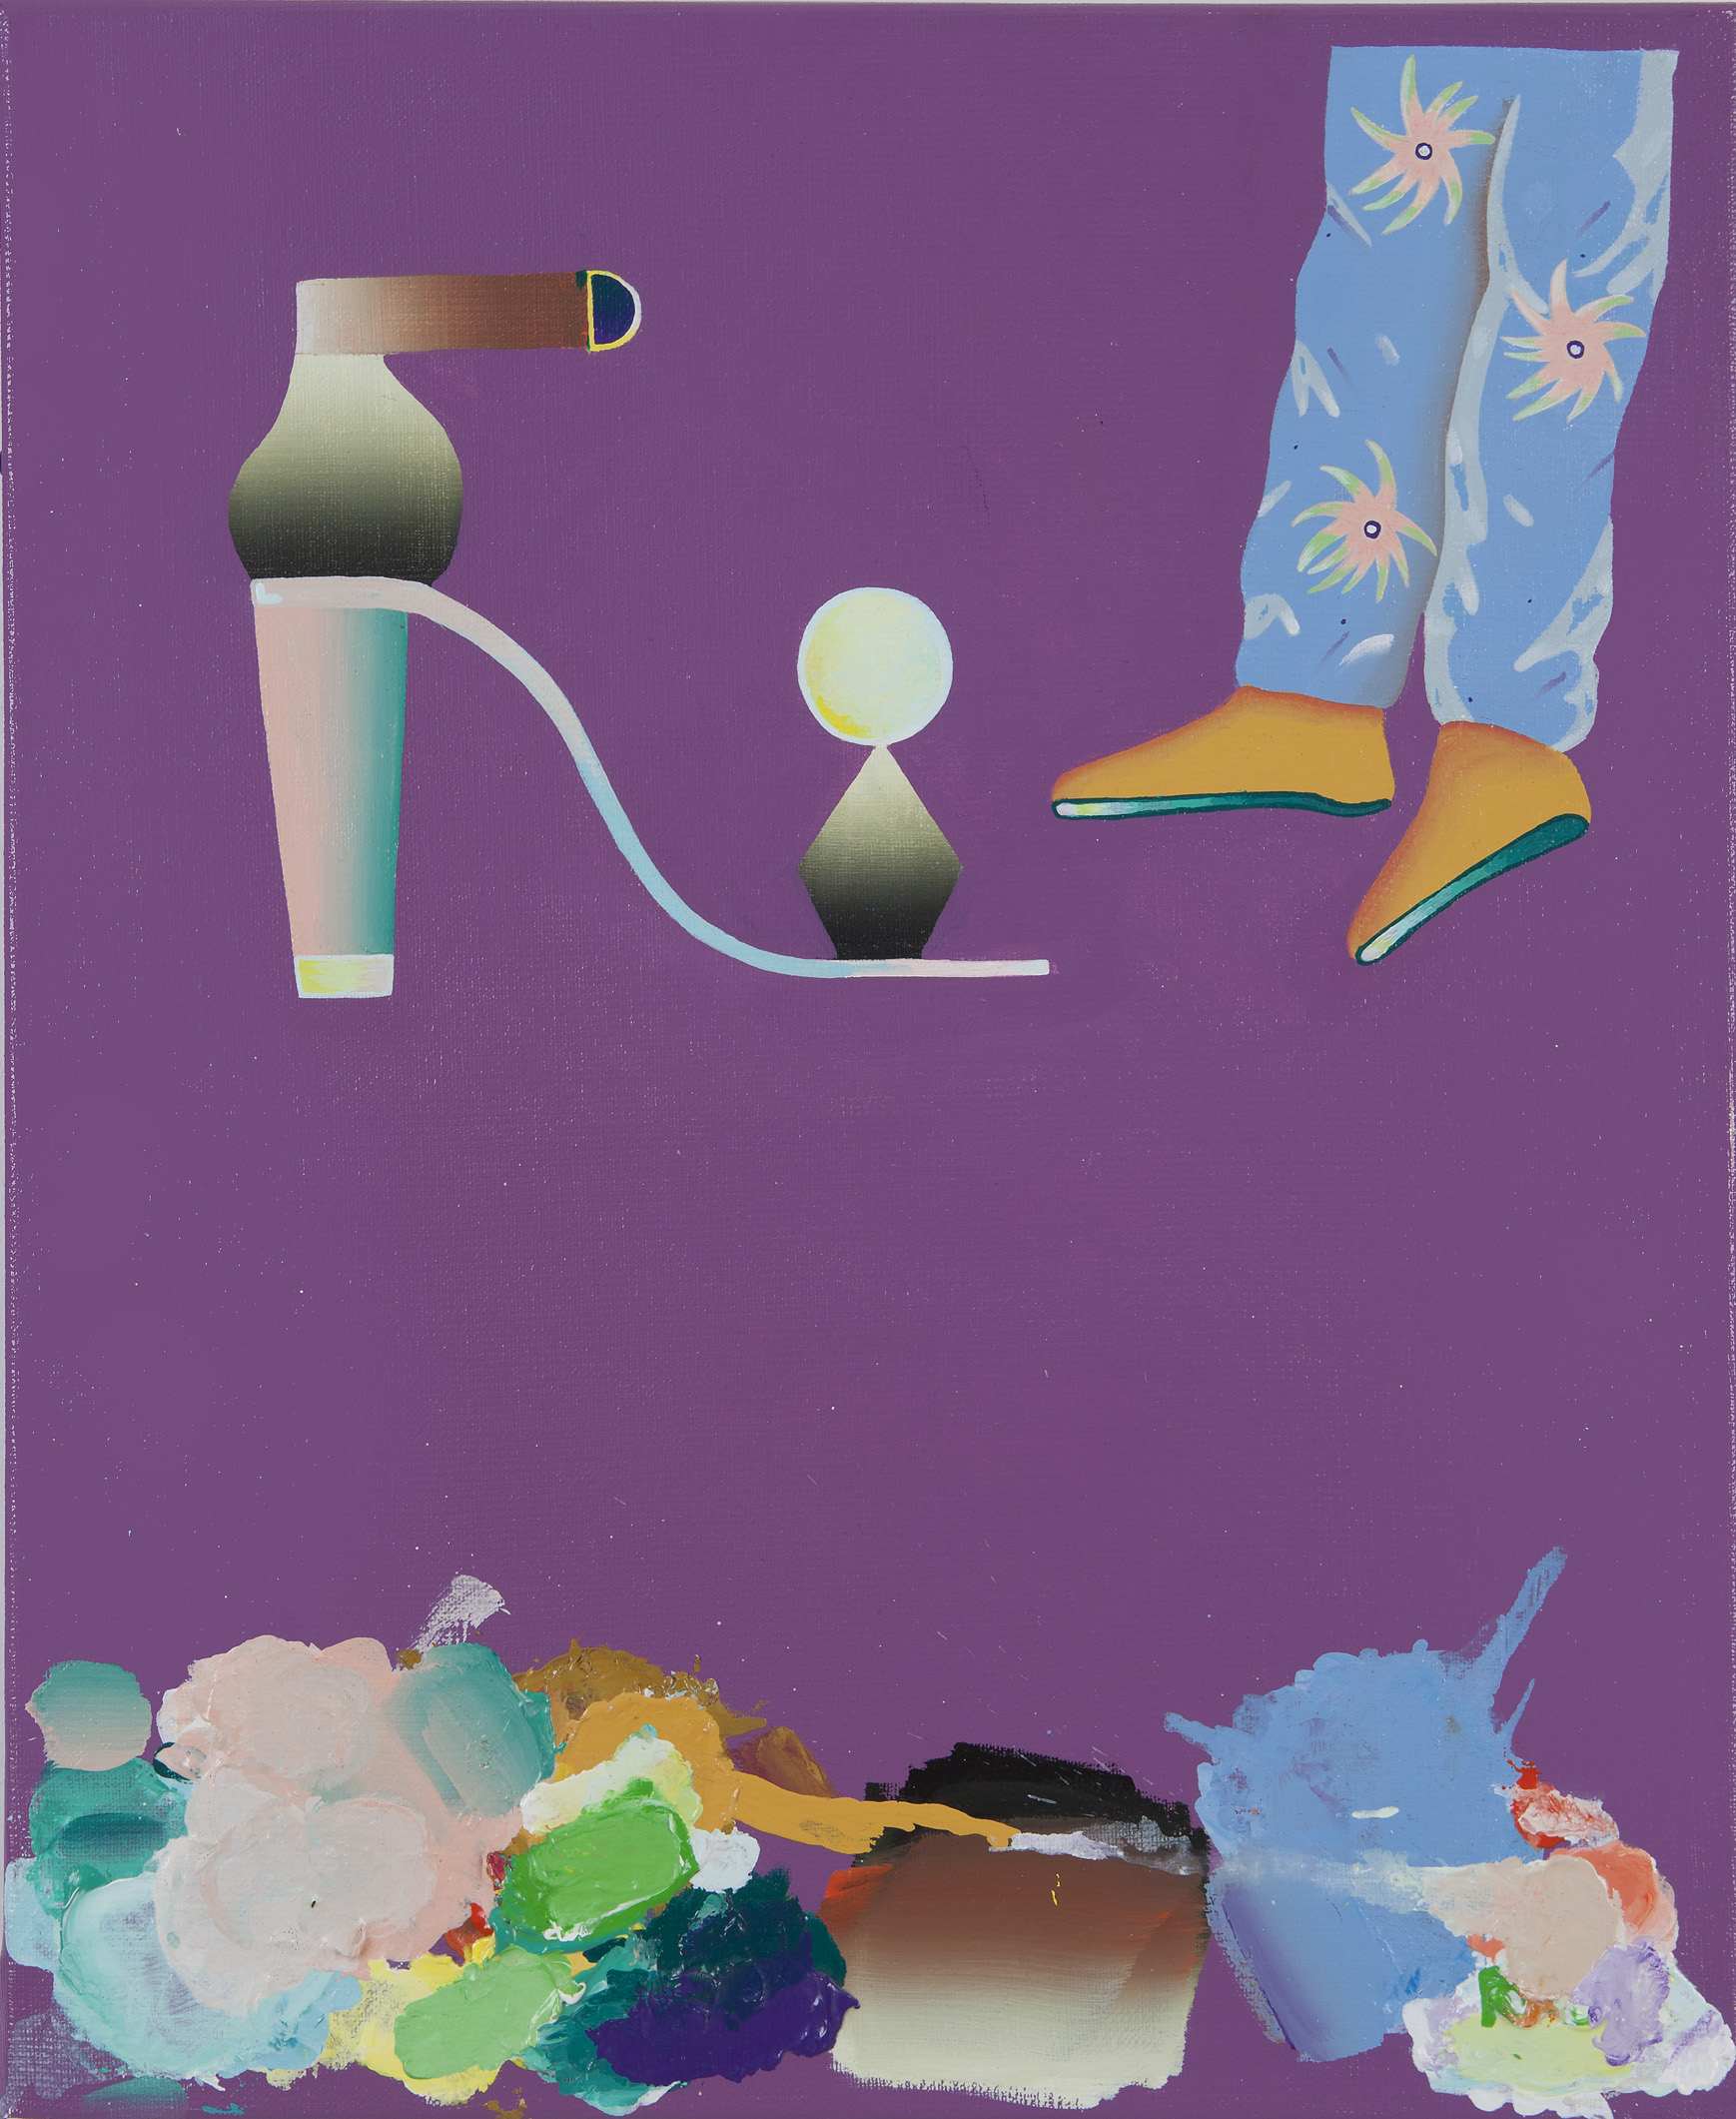 Keegan McHargue,  Untitled (Leisure) , 2009, Acrylic on linen, 22 x 16 inches (55.9 x 40.6 cm)